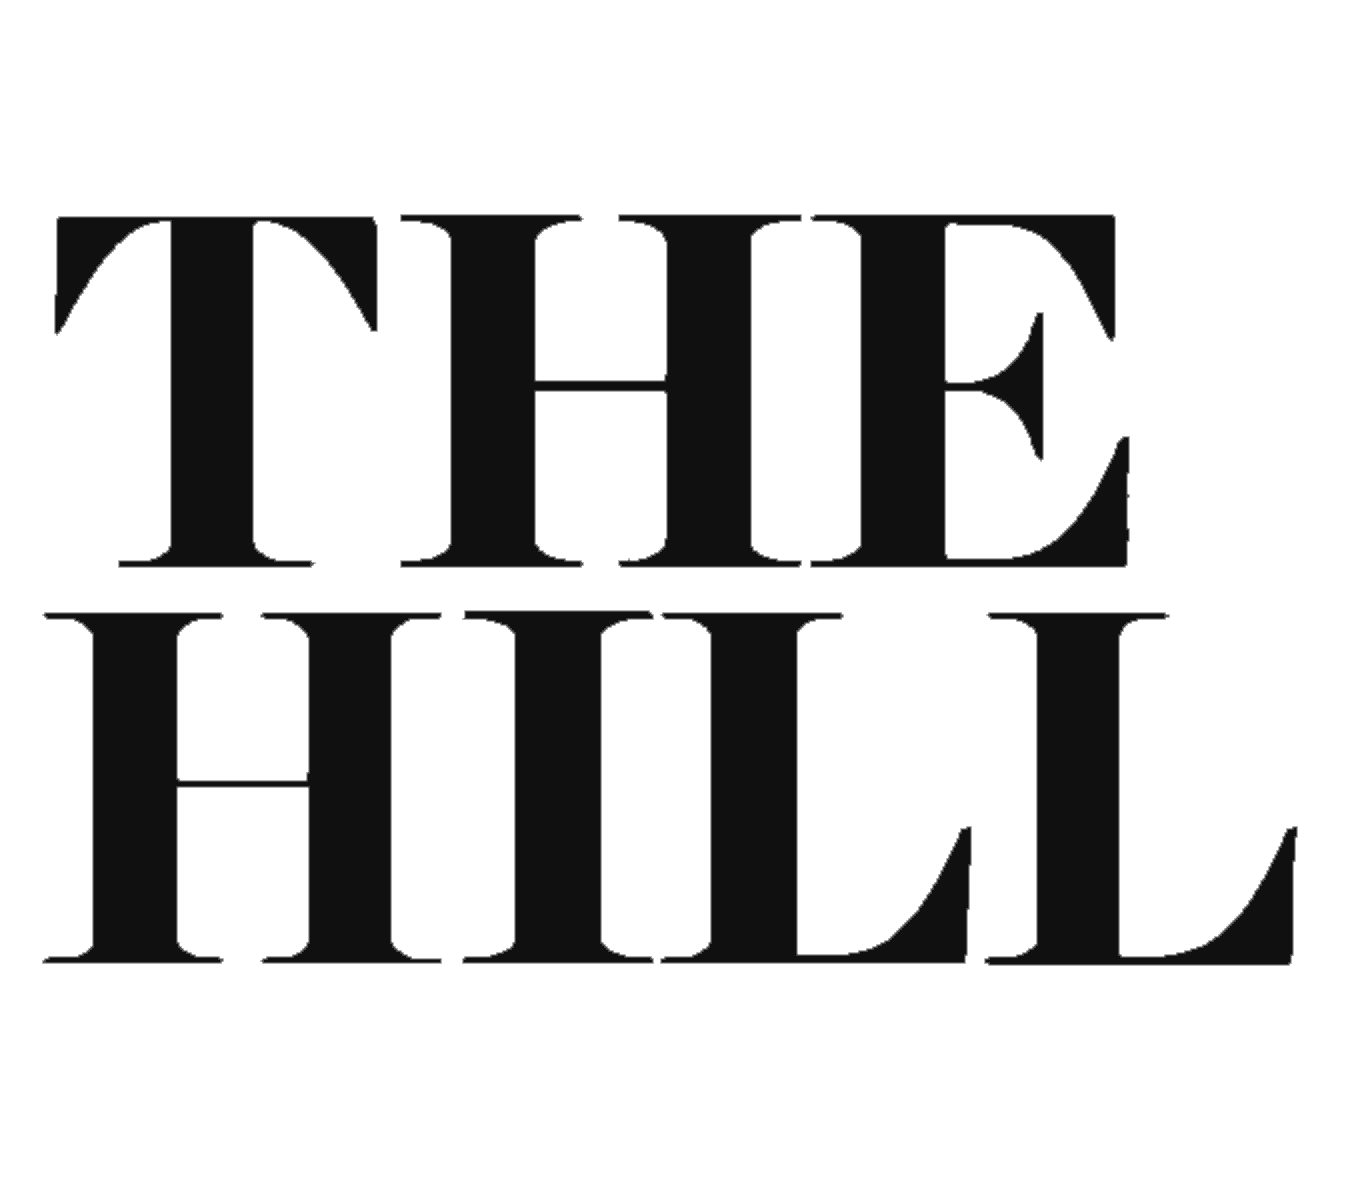 The Hill square logo